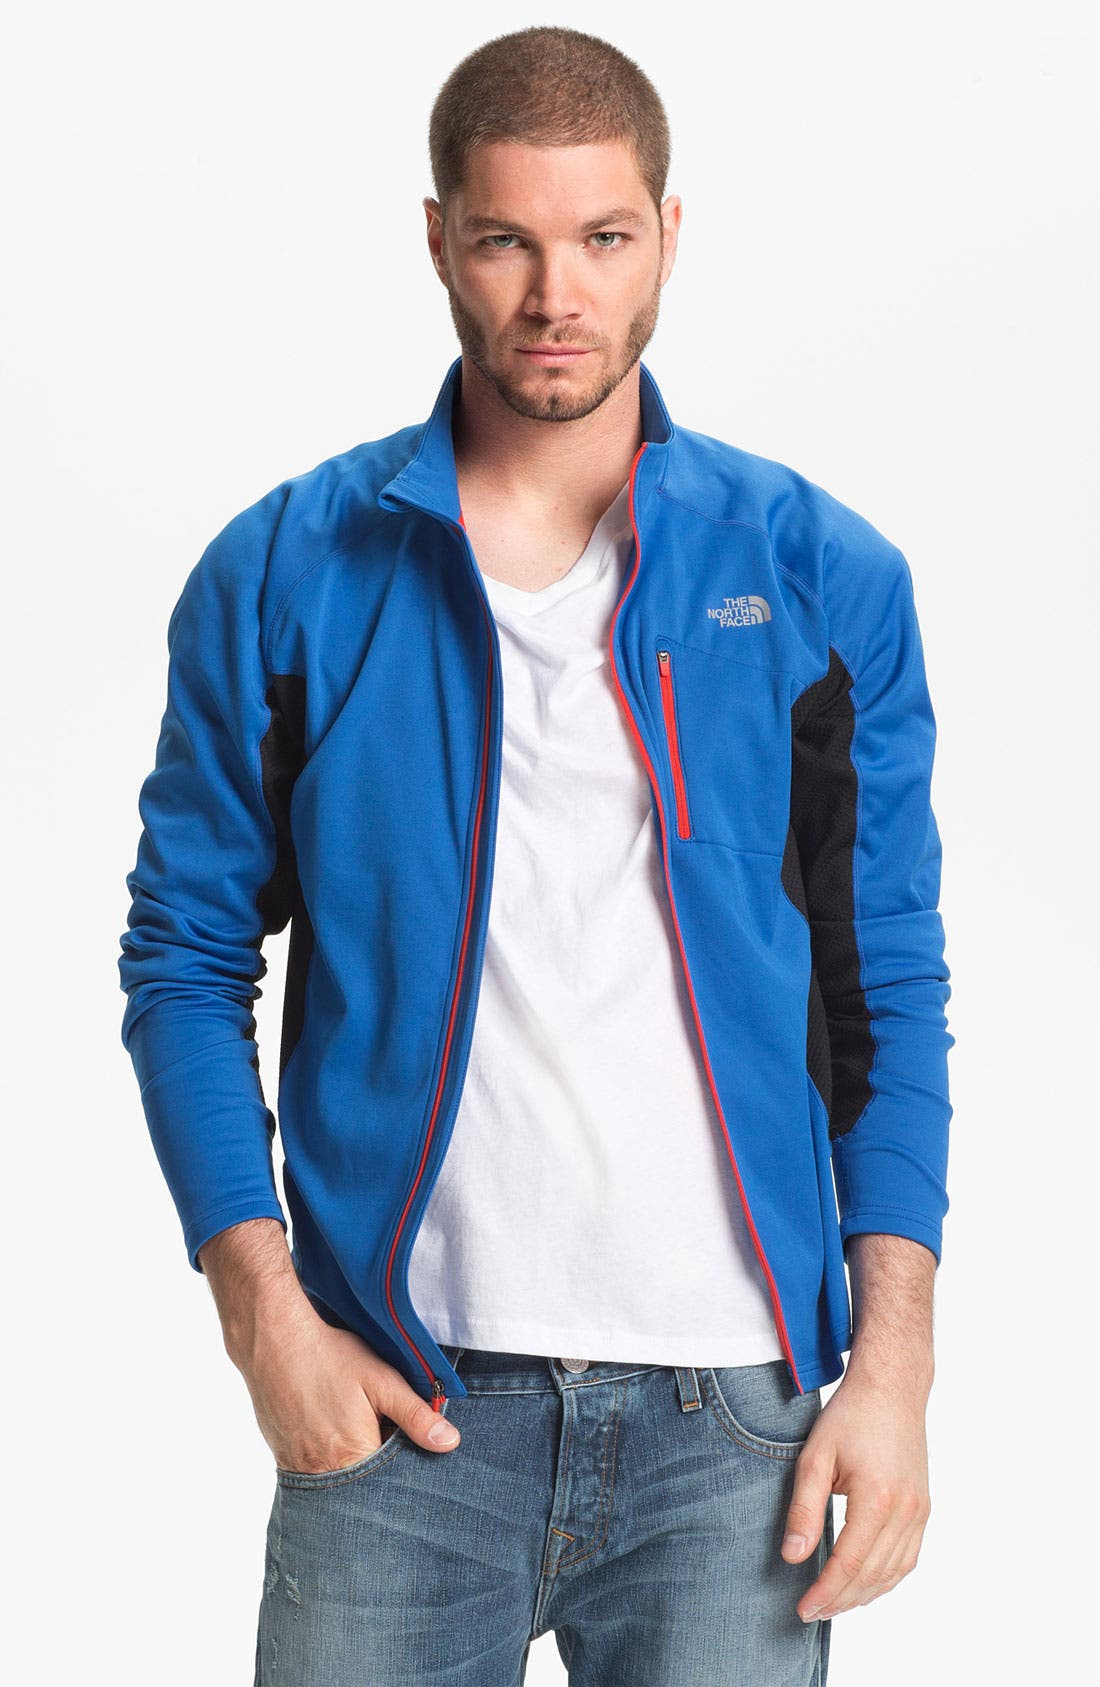 Alternate Image 1 Selected - The North Face 'Teocalli' Hybrid Fleece Jacket